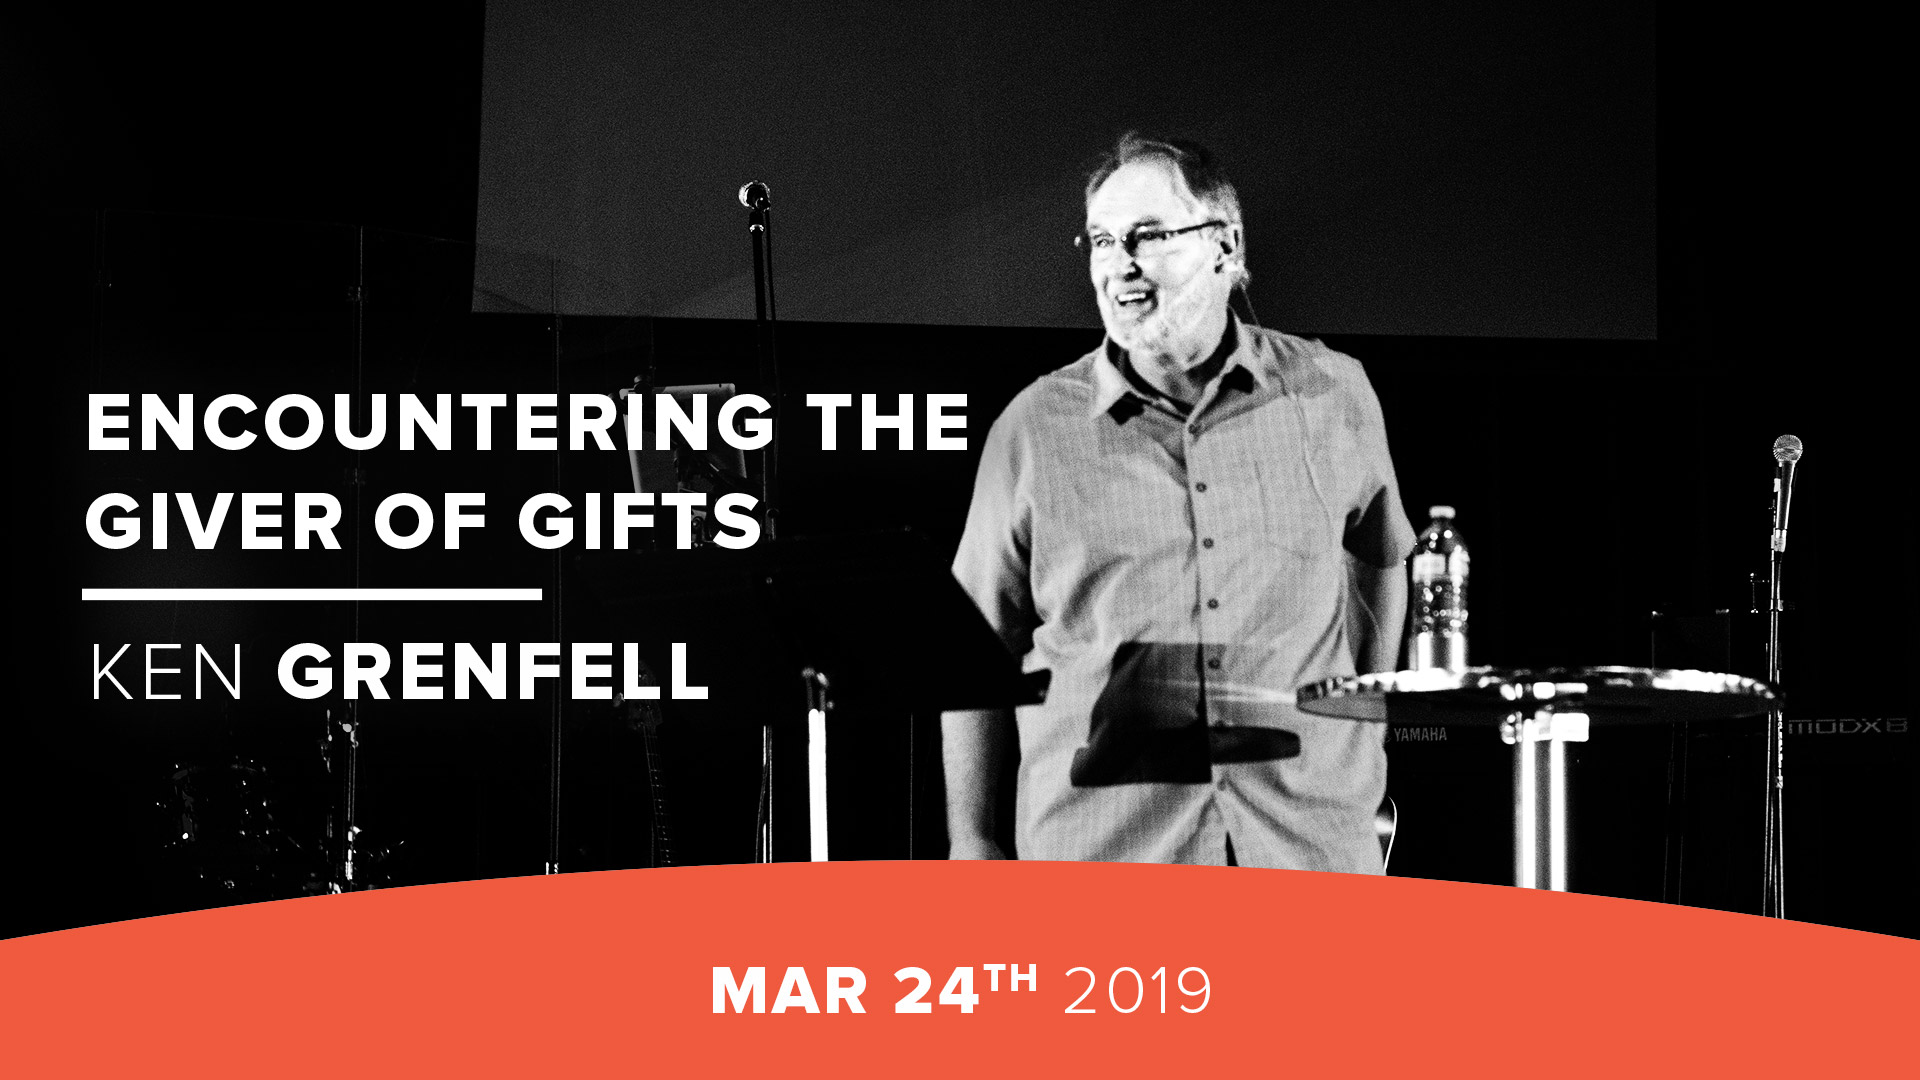 Encountering The Giver of Gifts